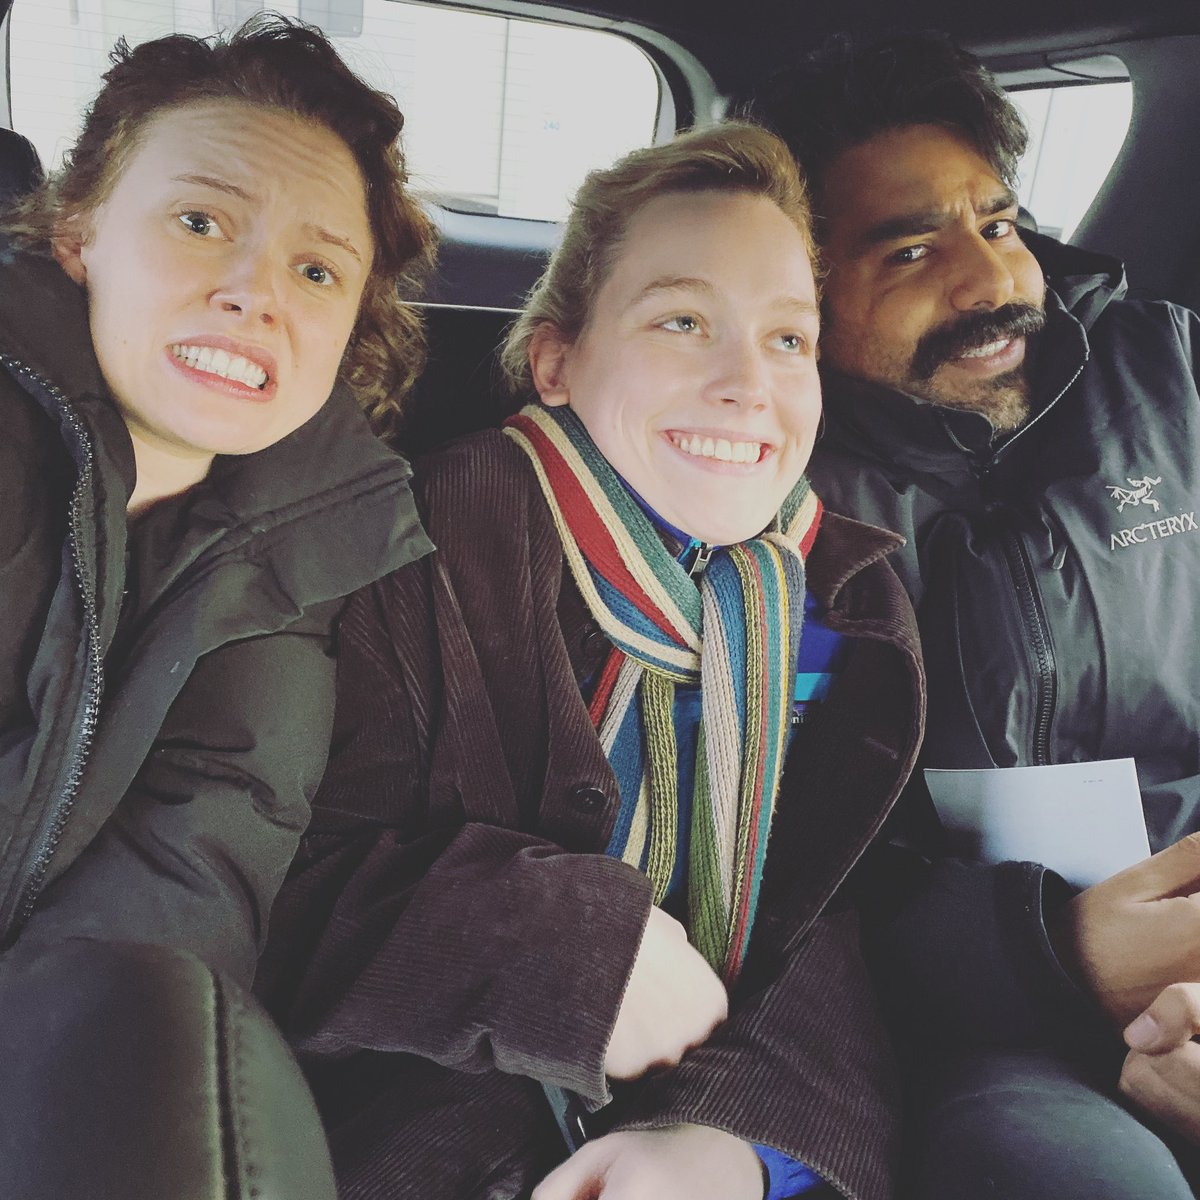 Rahul Kohli On Twitter Budget Cuts On The Haunting Of Bly Manor Meant That Instead Of My Personal Limousine I Had To Share A Car With The Rest Of The Cast Unacceptable